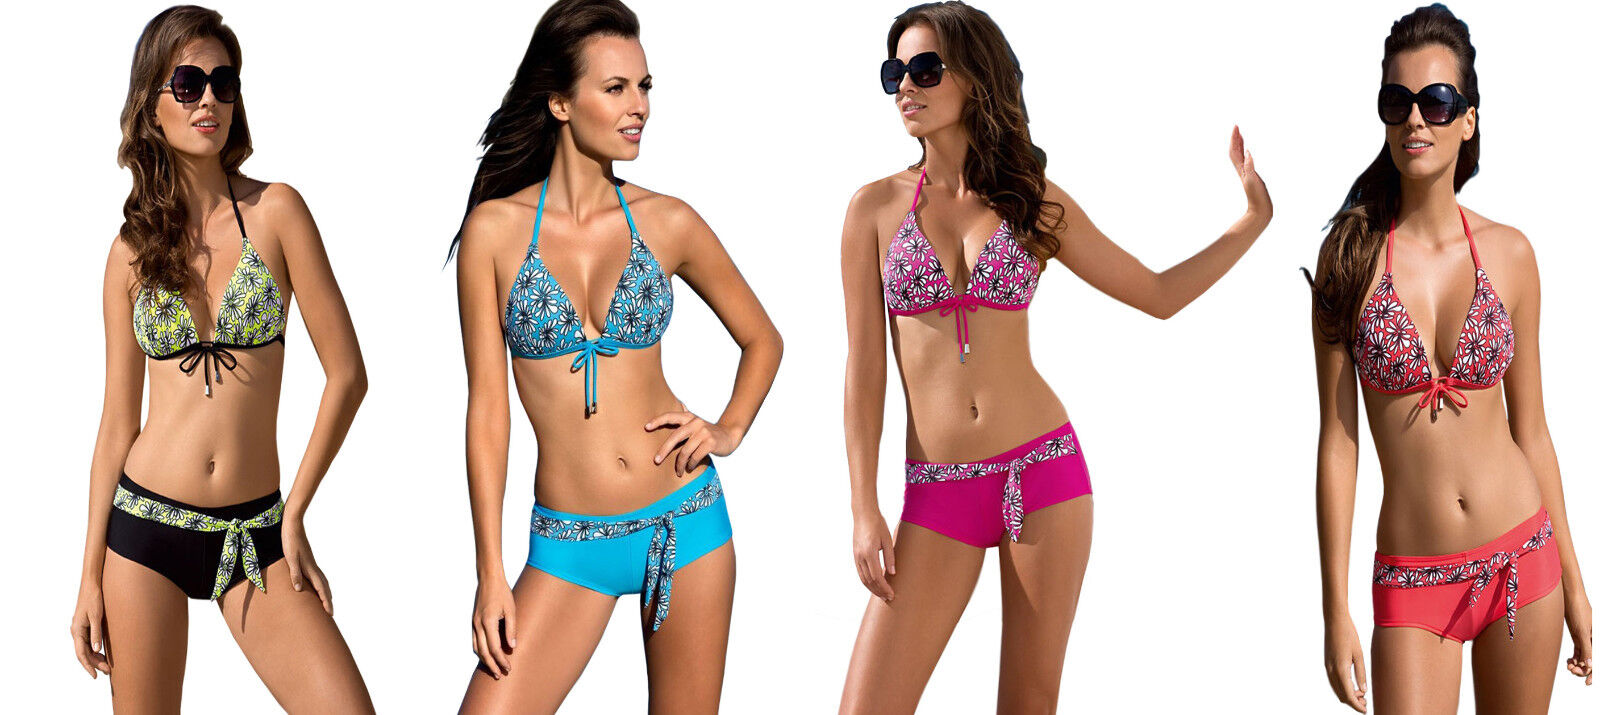 Verano Bikini Set Beach Swimsuit S33 - Made in EU